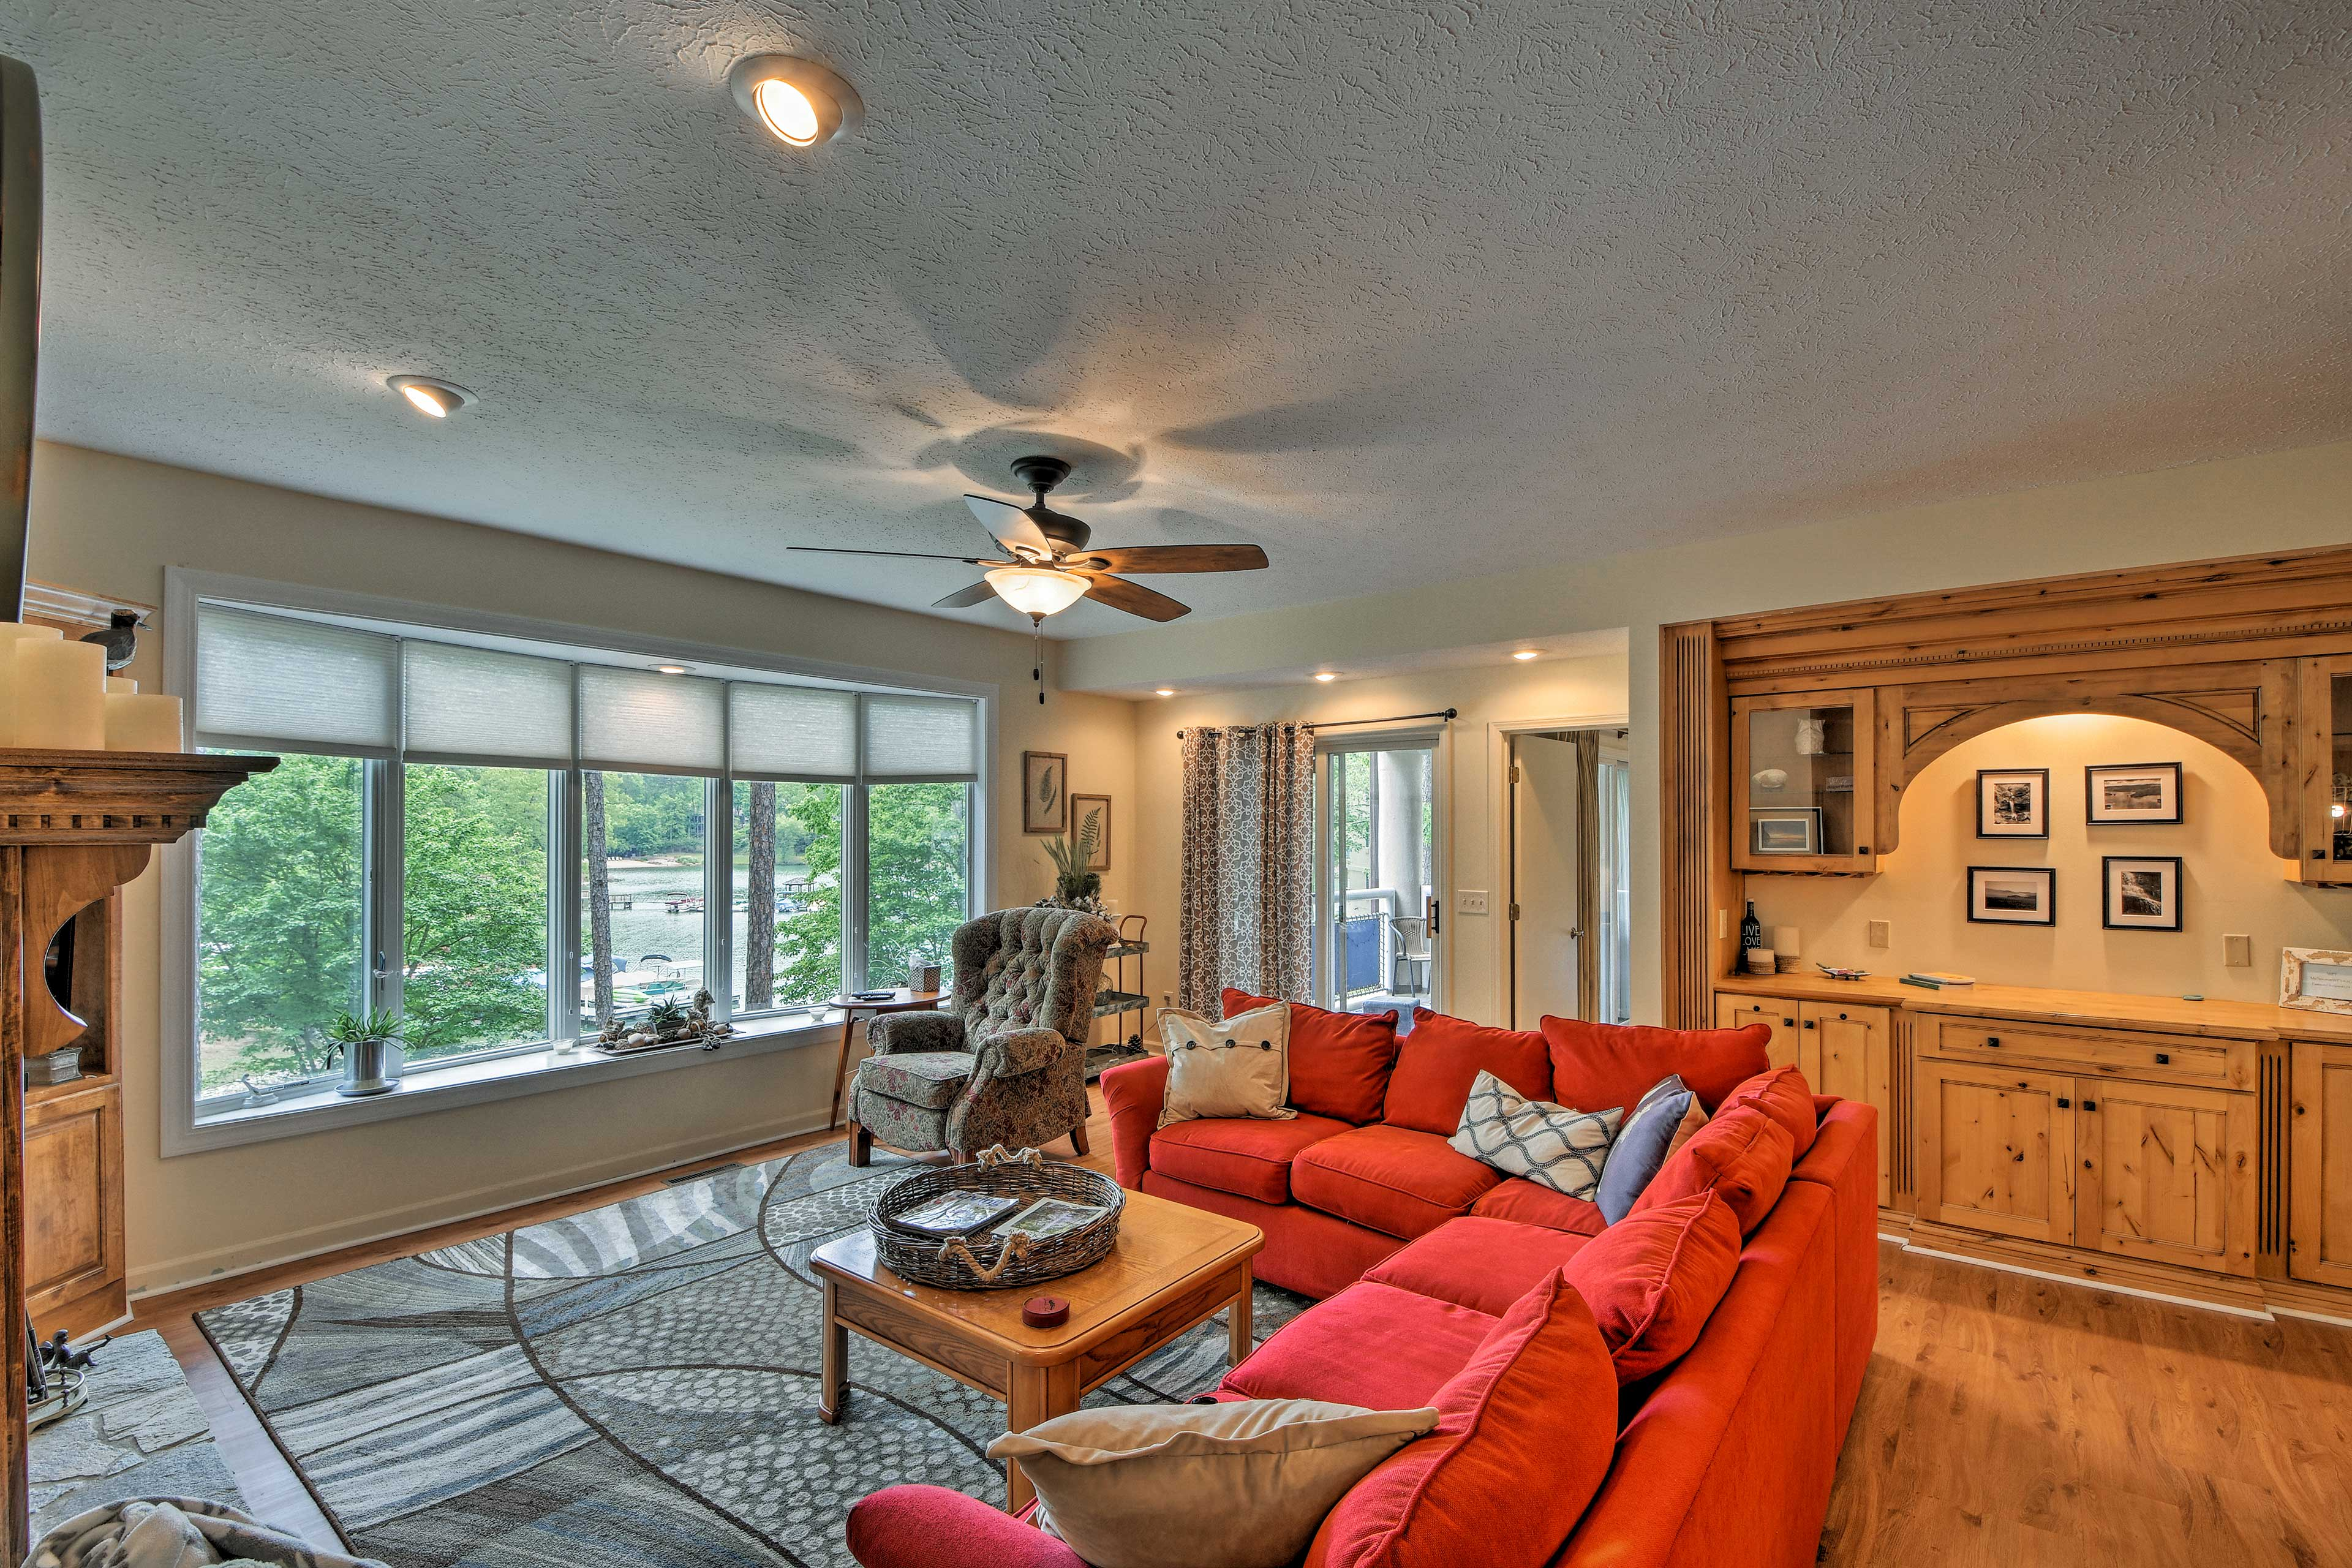 Enjoy views through the large windows overlooking the water.